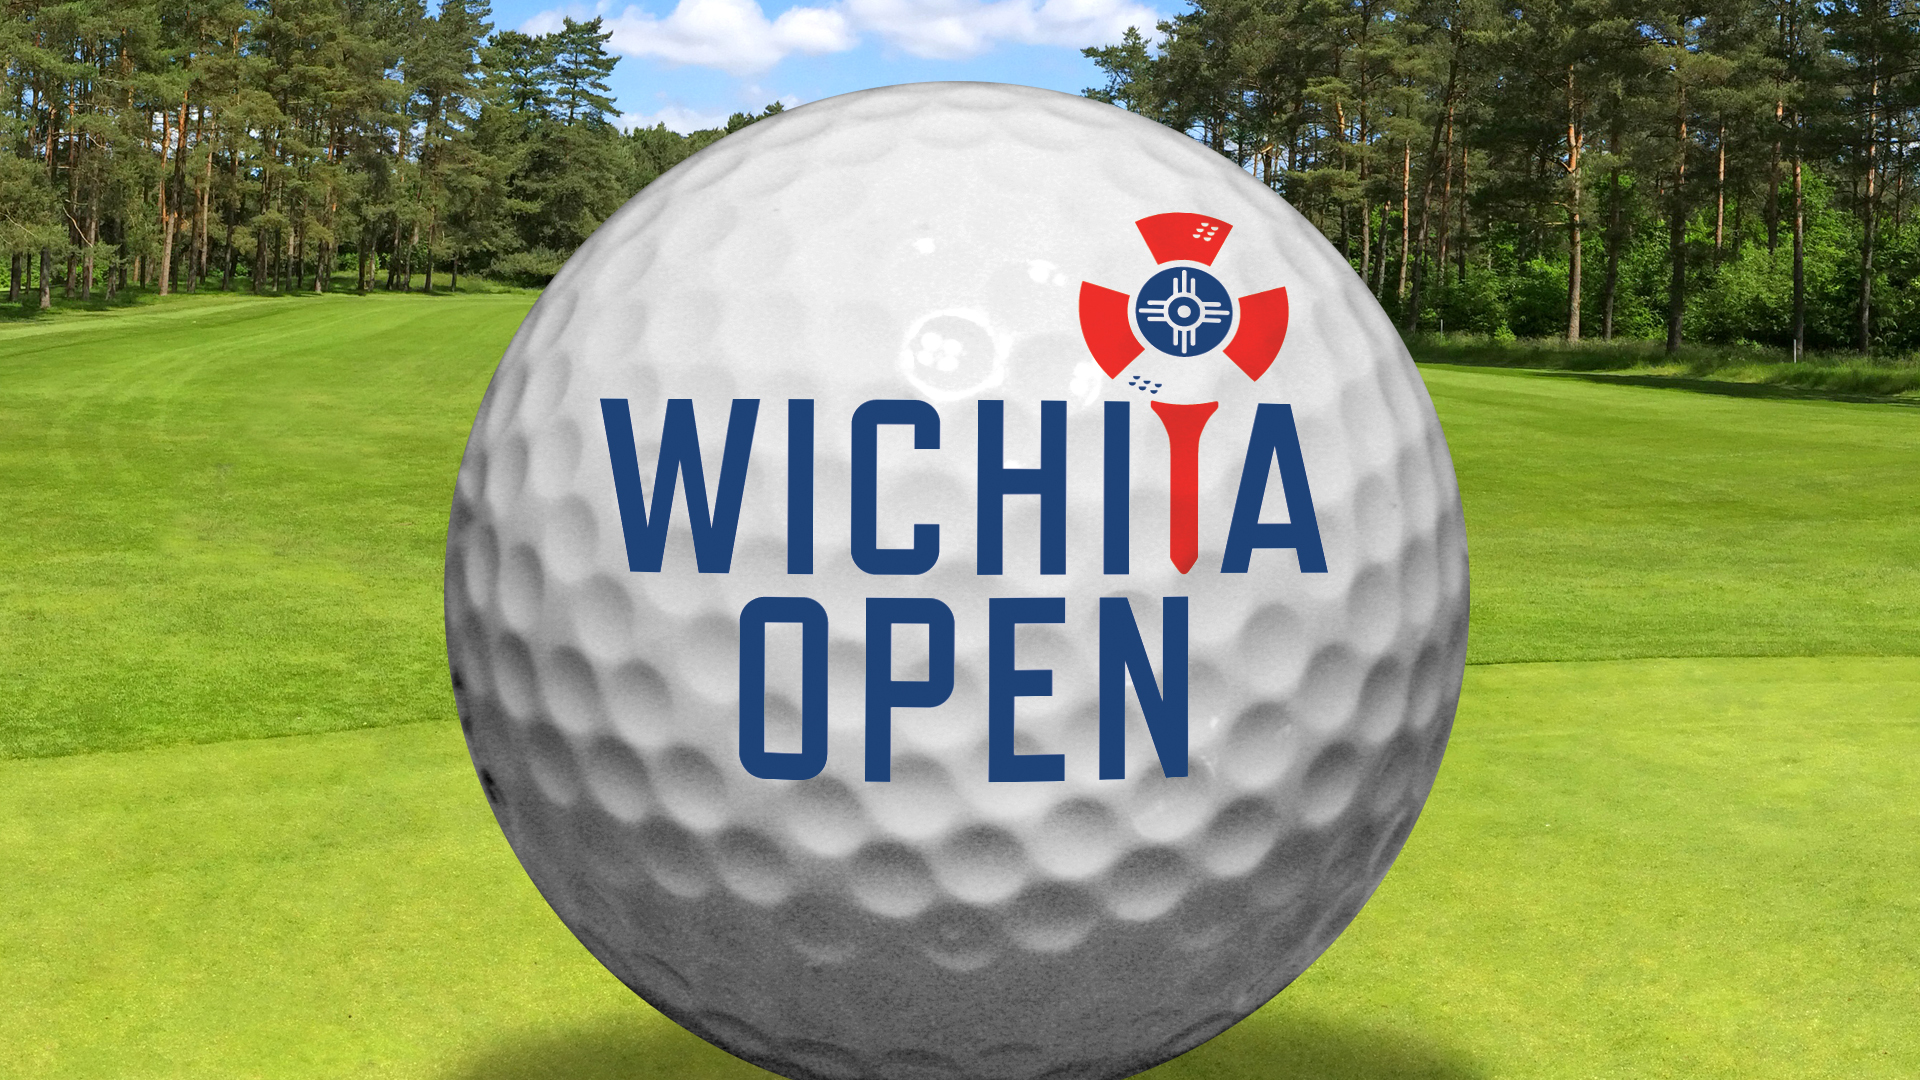 TRIPS Wichita Open Golf_1529787410682.jpg.jpg